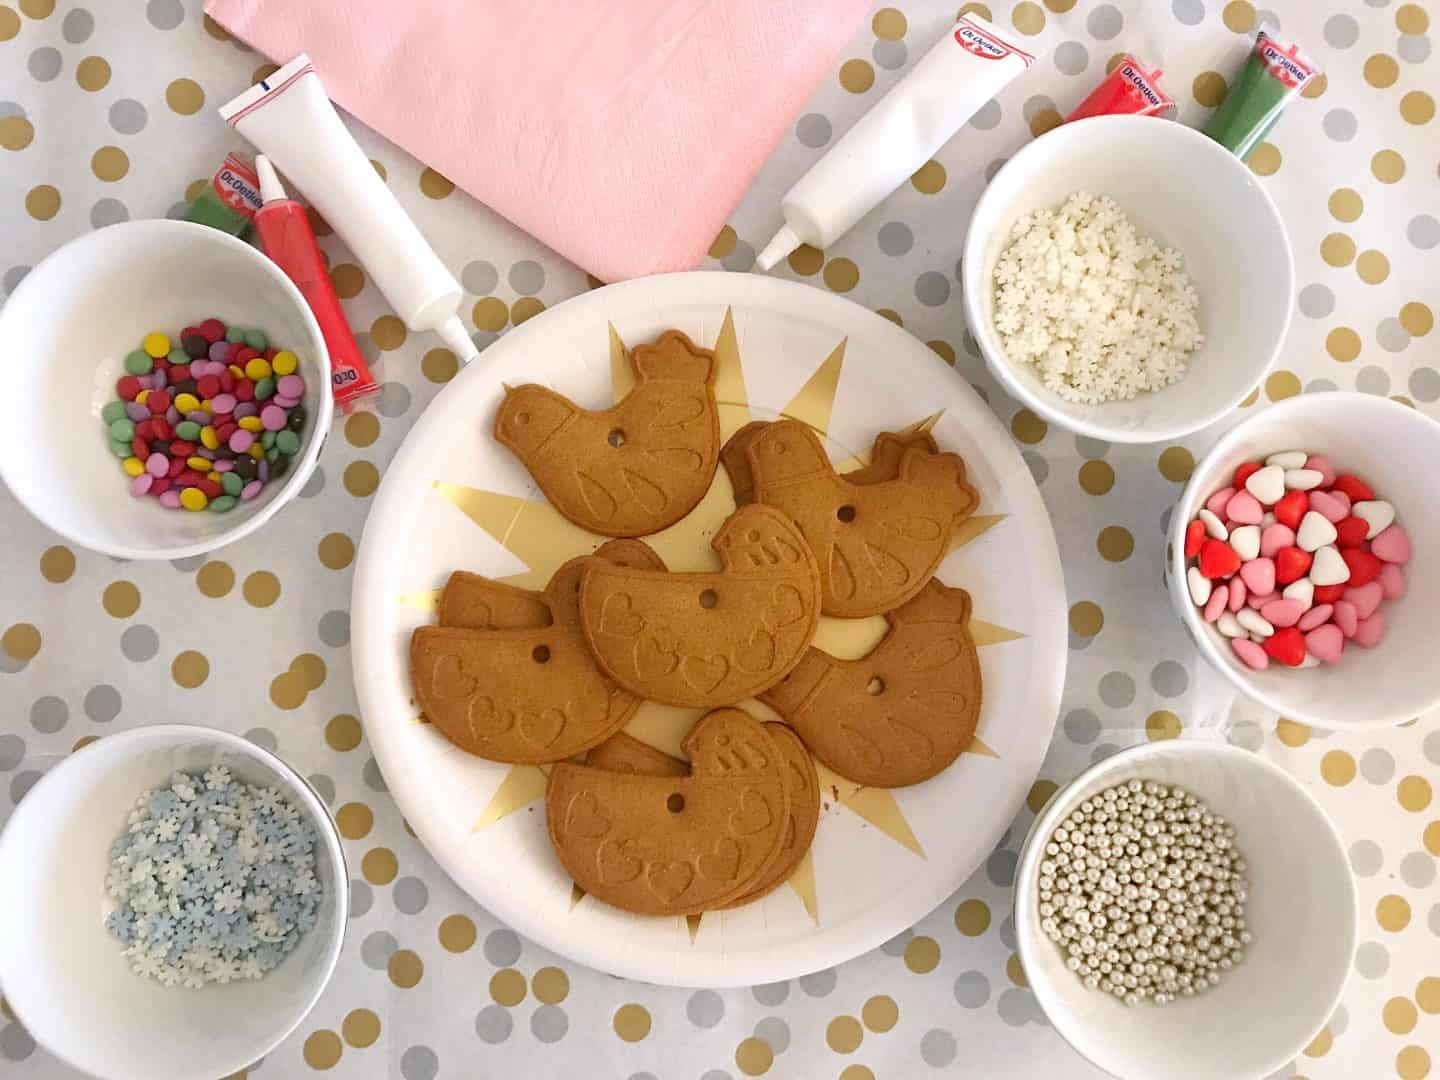 Gingerbread biscuits, icing and decorations